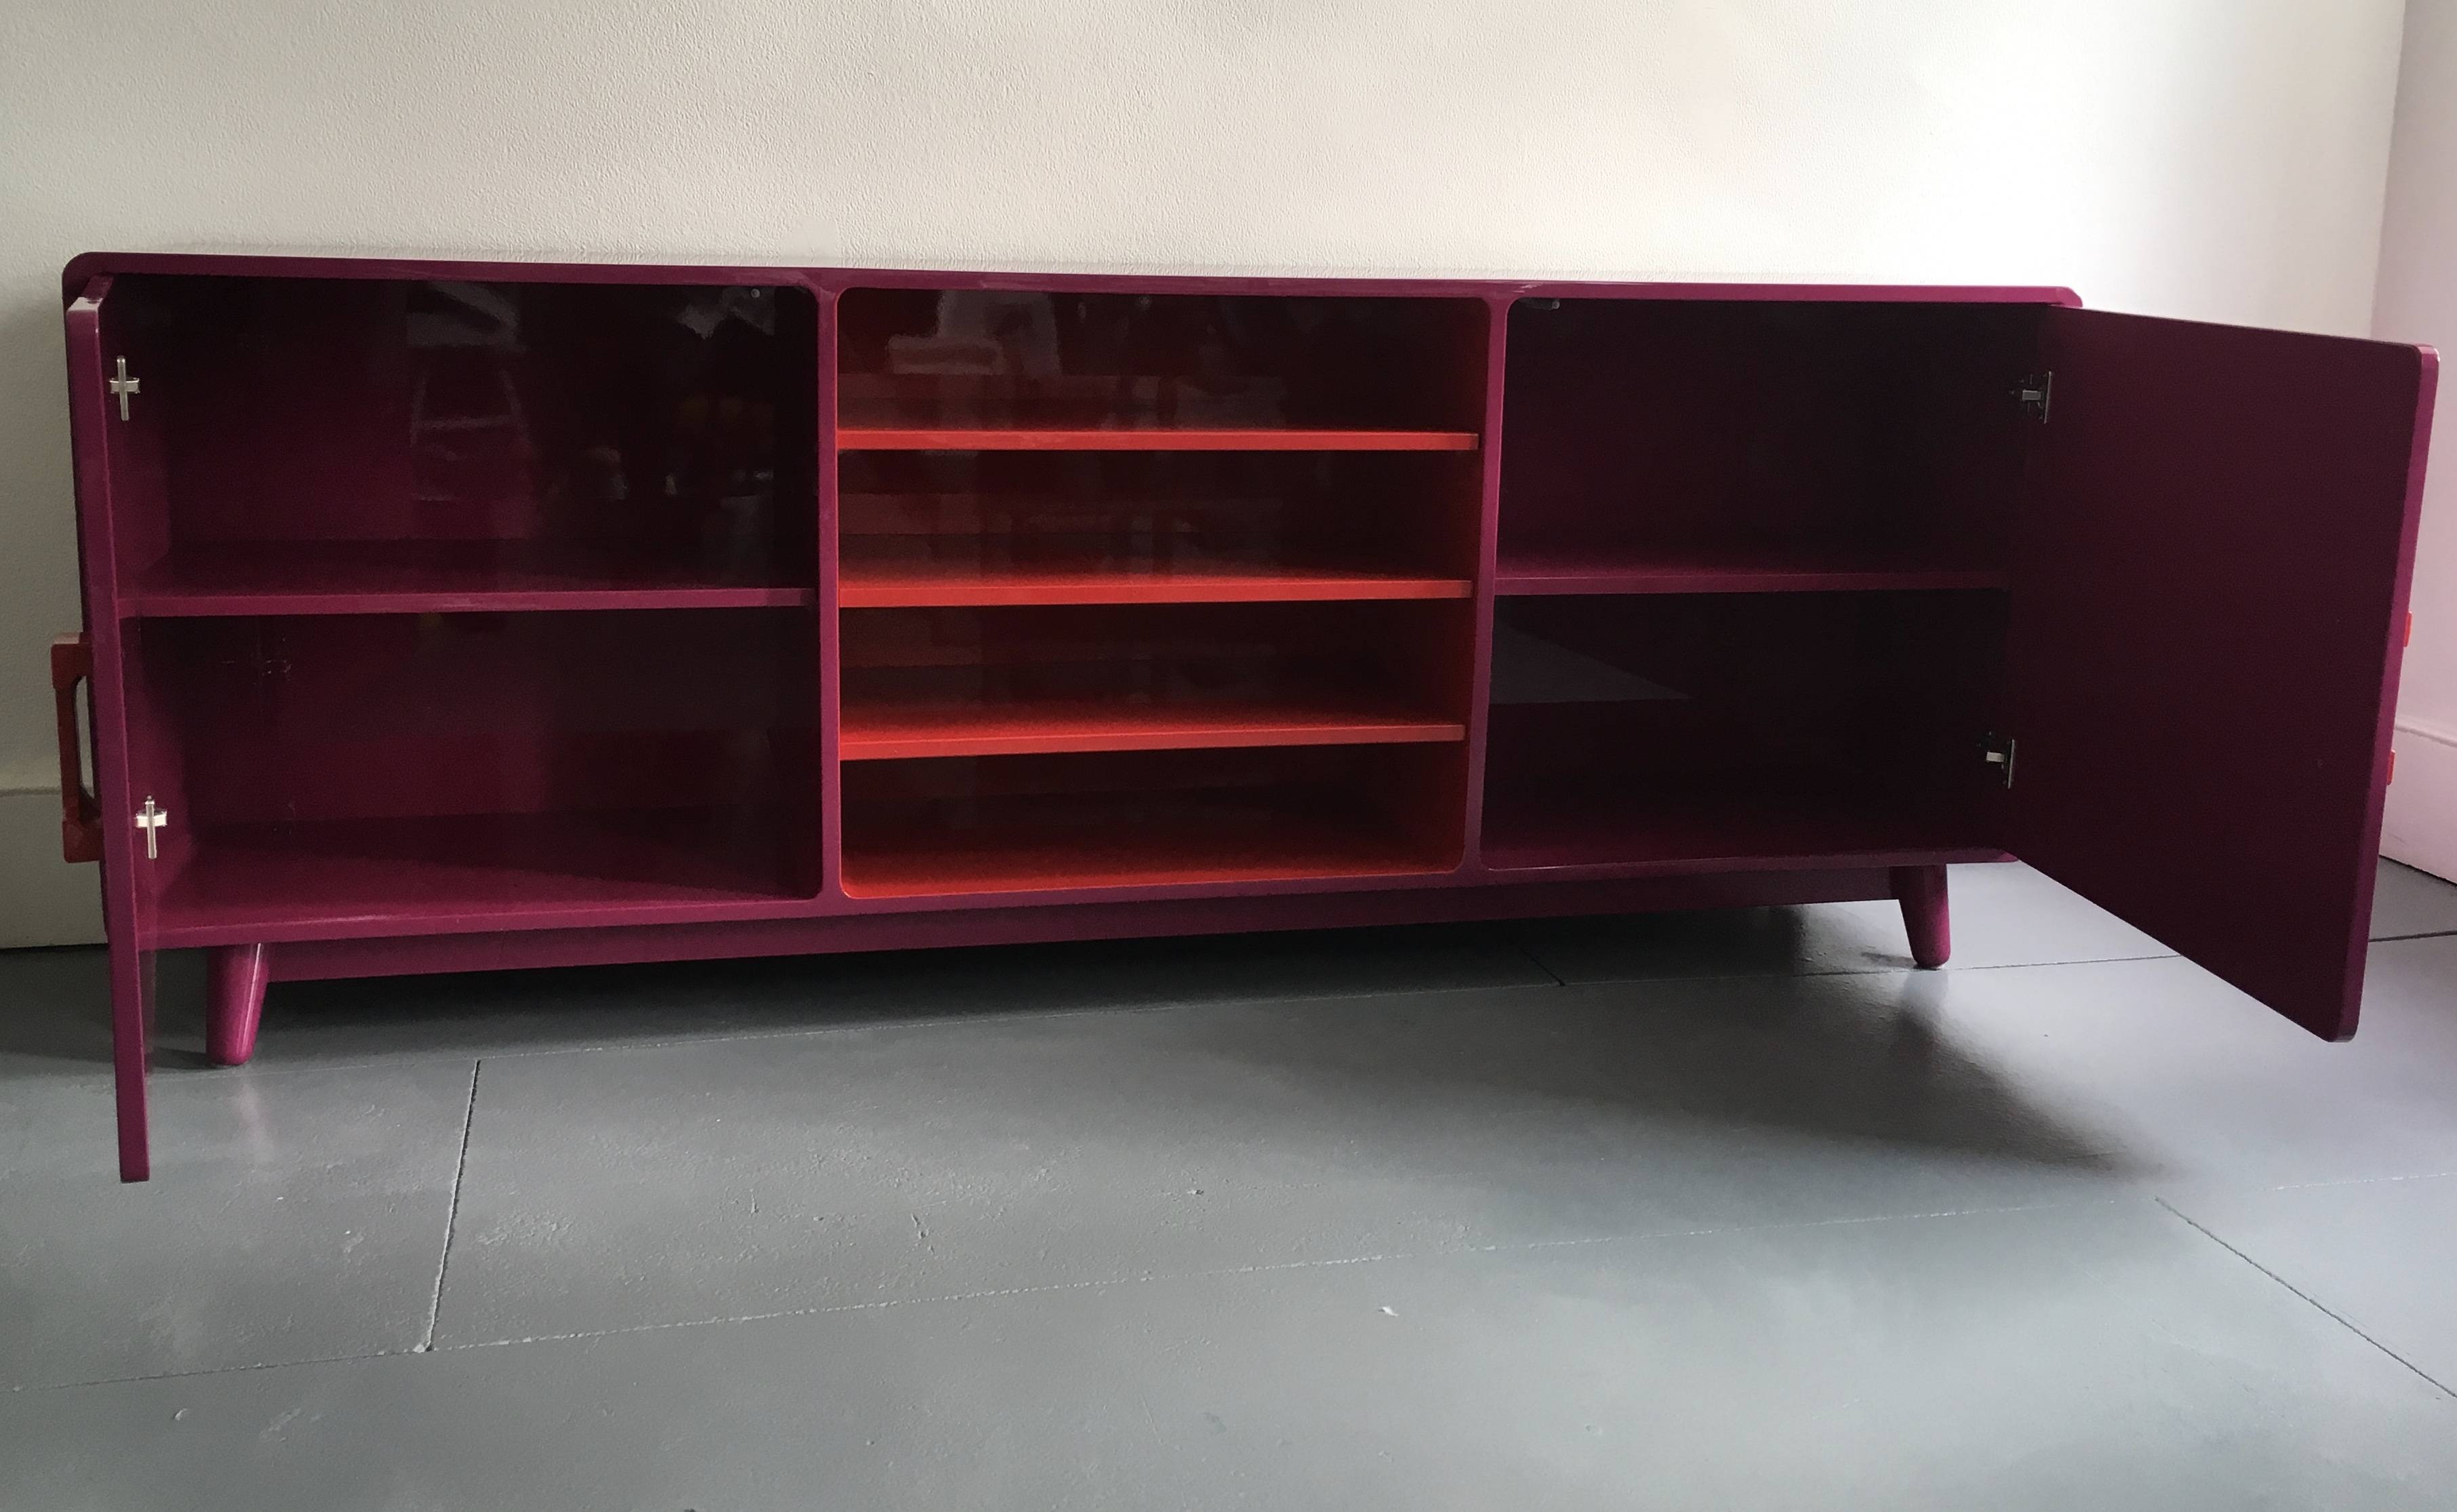 60's Inspired High Gloss Lacquered Sideboard In Hot Pink And Red Intended For Red High Gloss Sideboard (View 14 of 20)